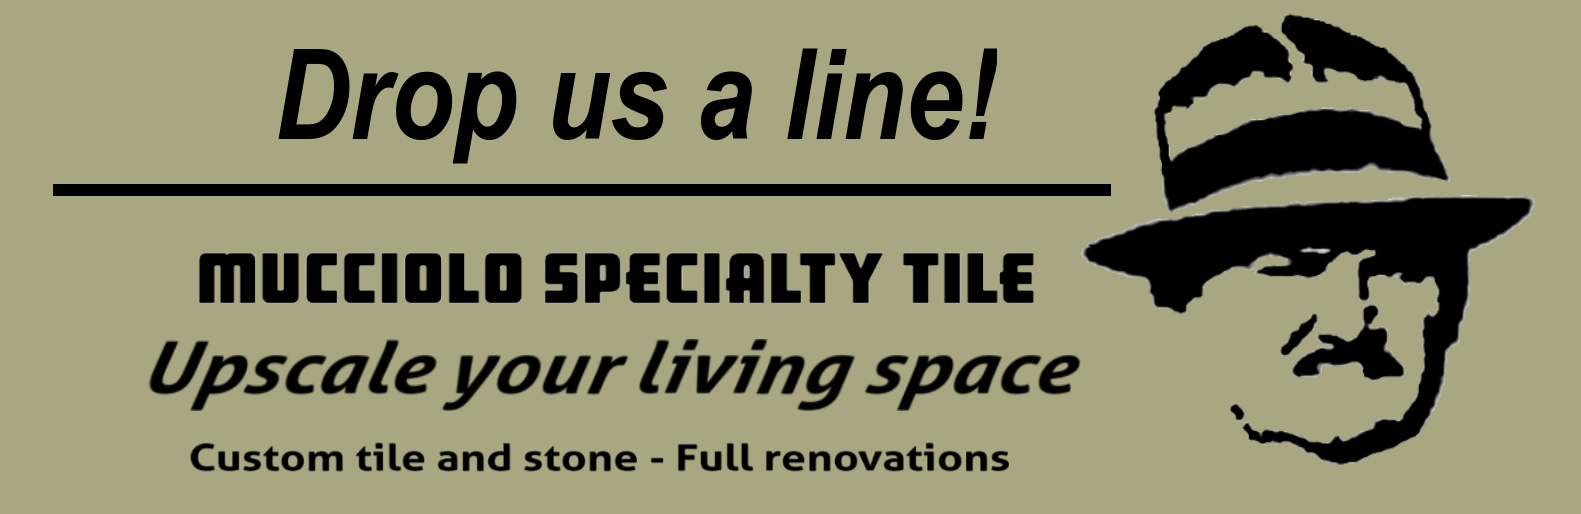 Contact Mucciolo Specialty Tile and Renovations